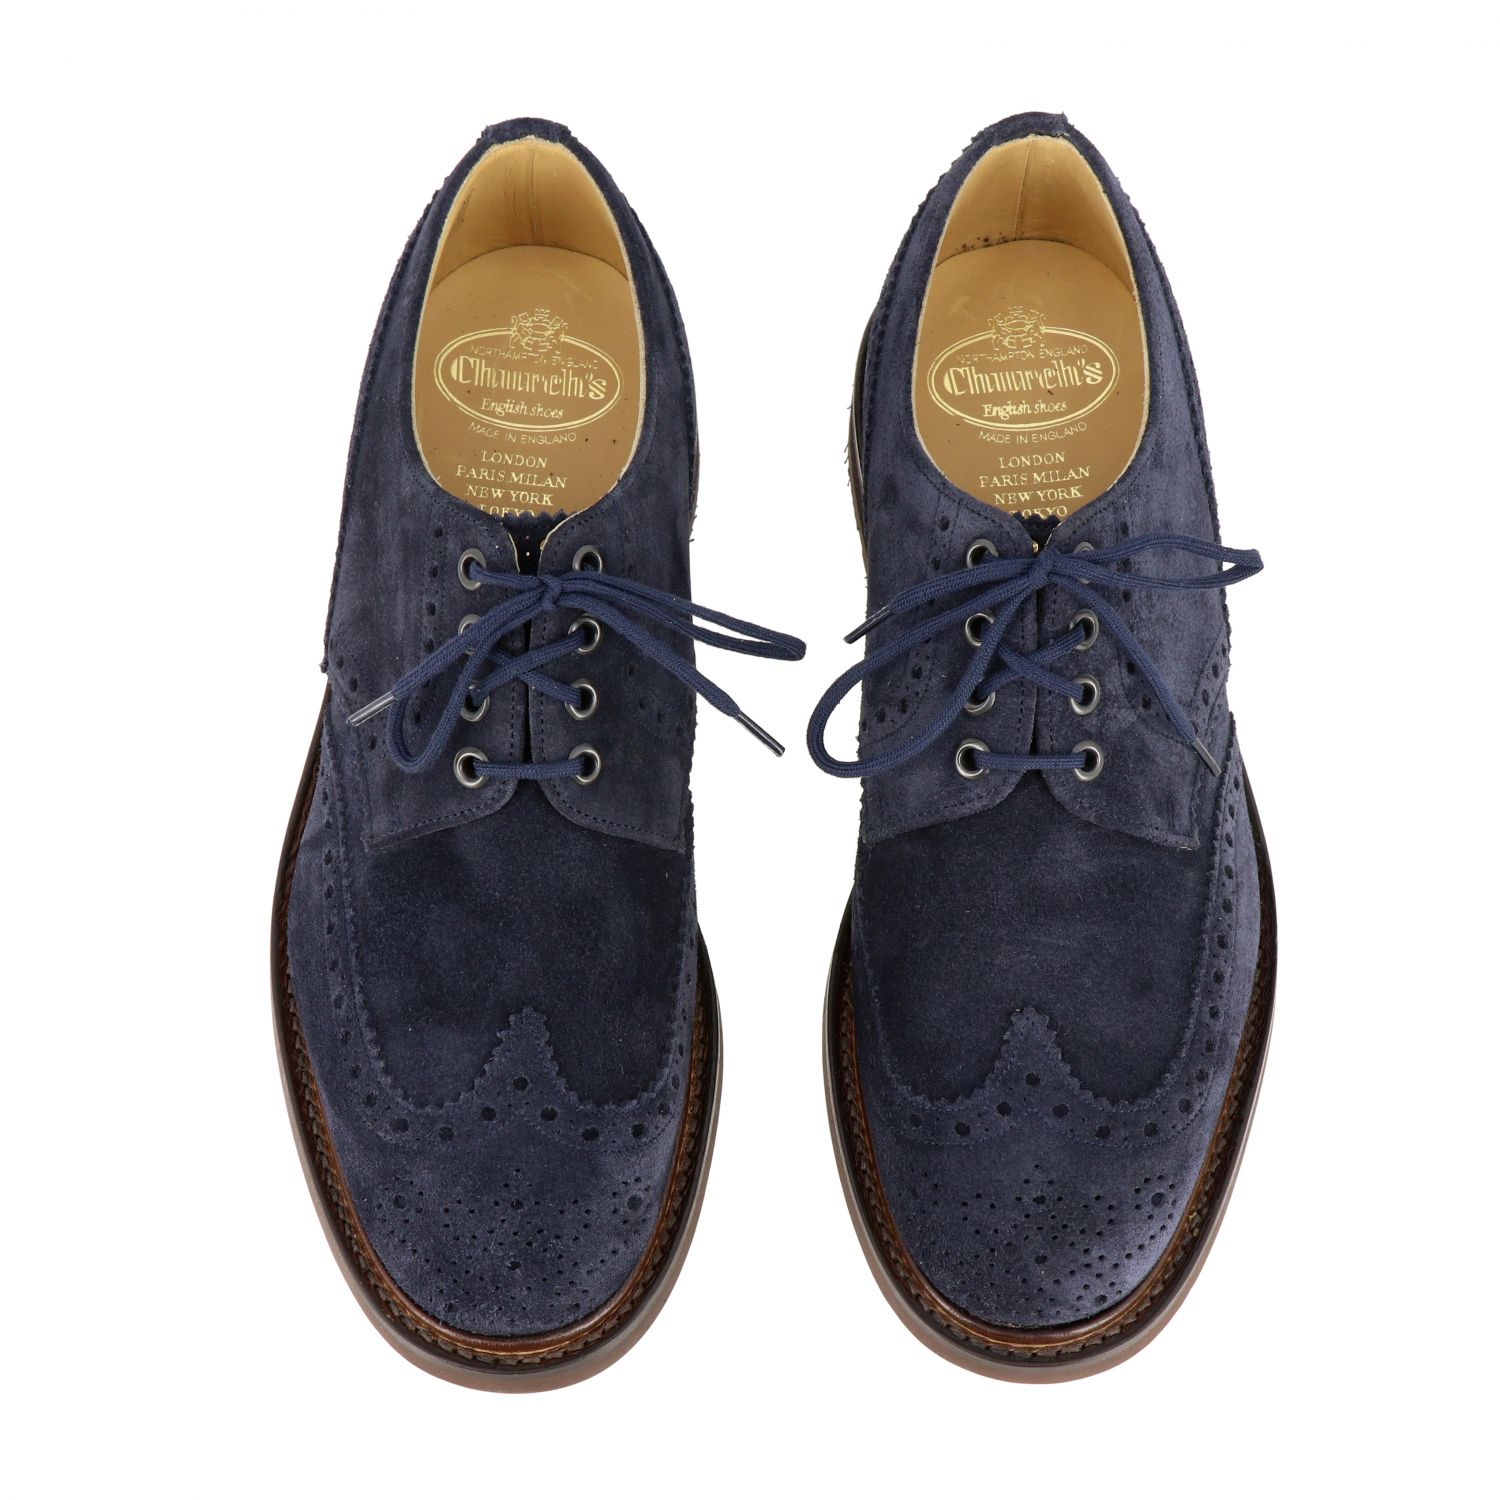 Brogue shoes Church's: Church's suede lace-up with brogue motif navy 3